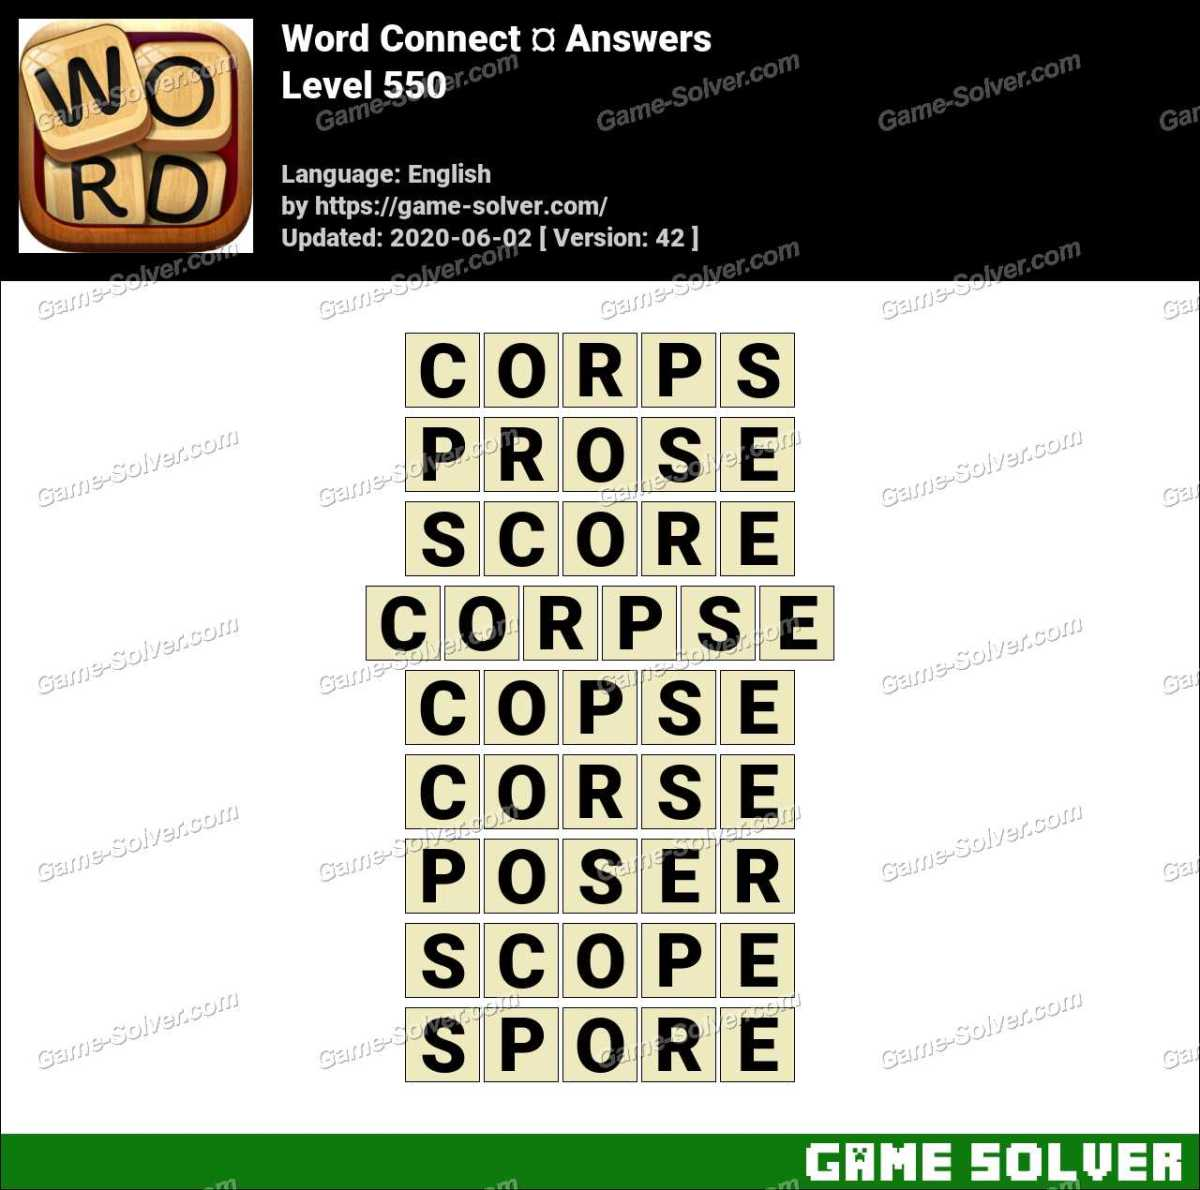 Word Connect Level 550 Answers